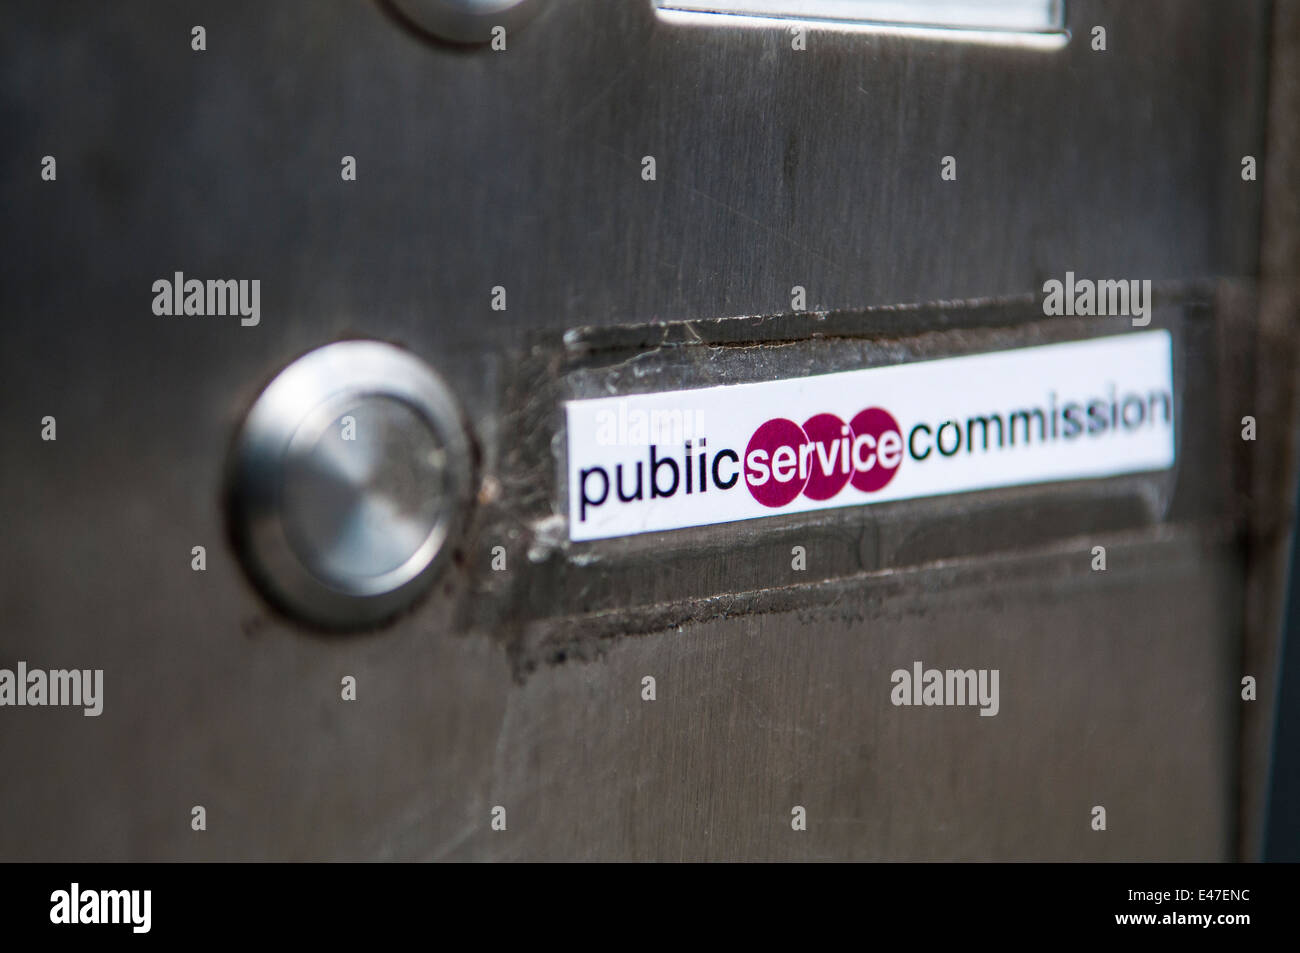 Call bell for the Public Service Commission - Stock Image